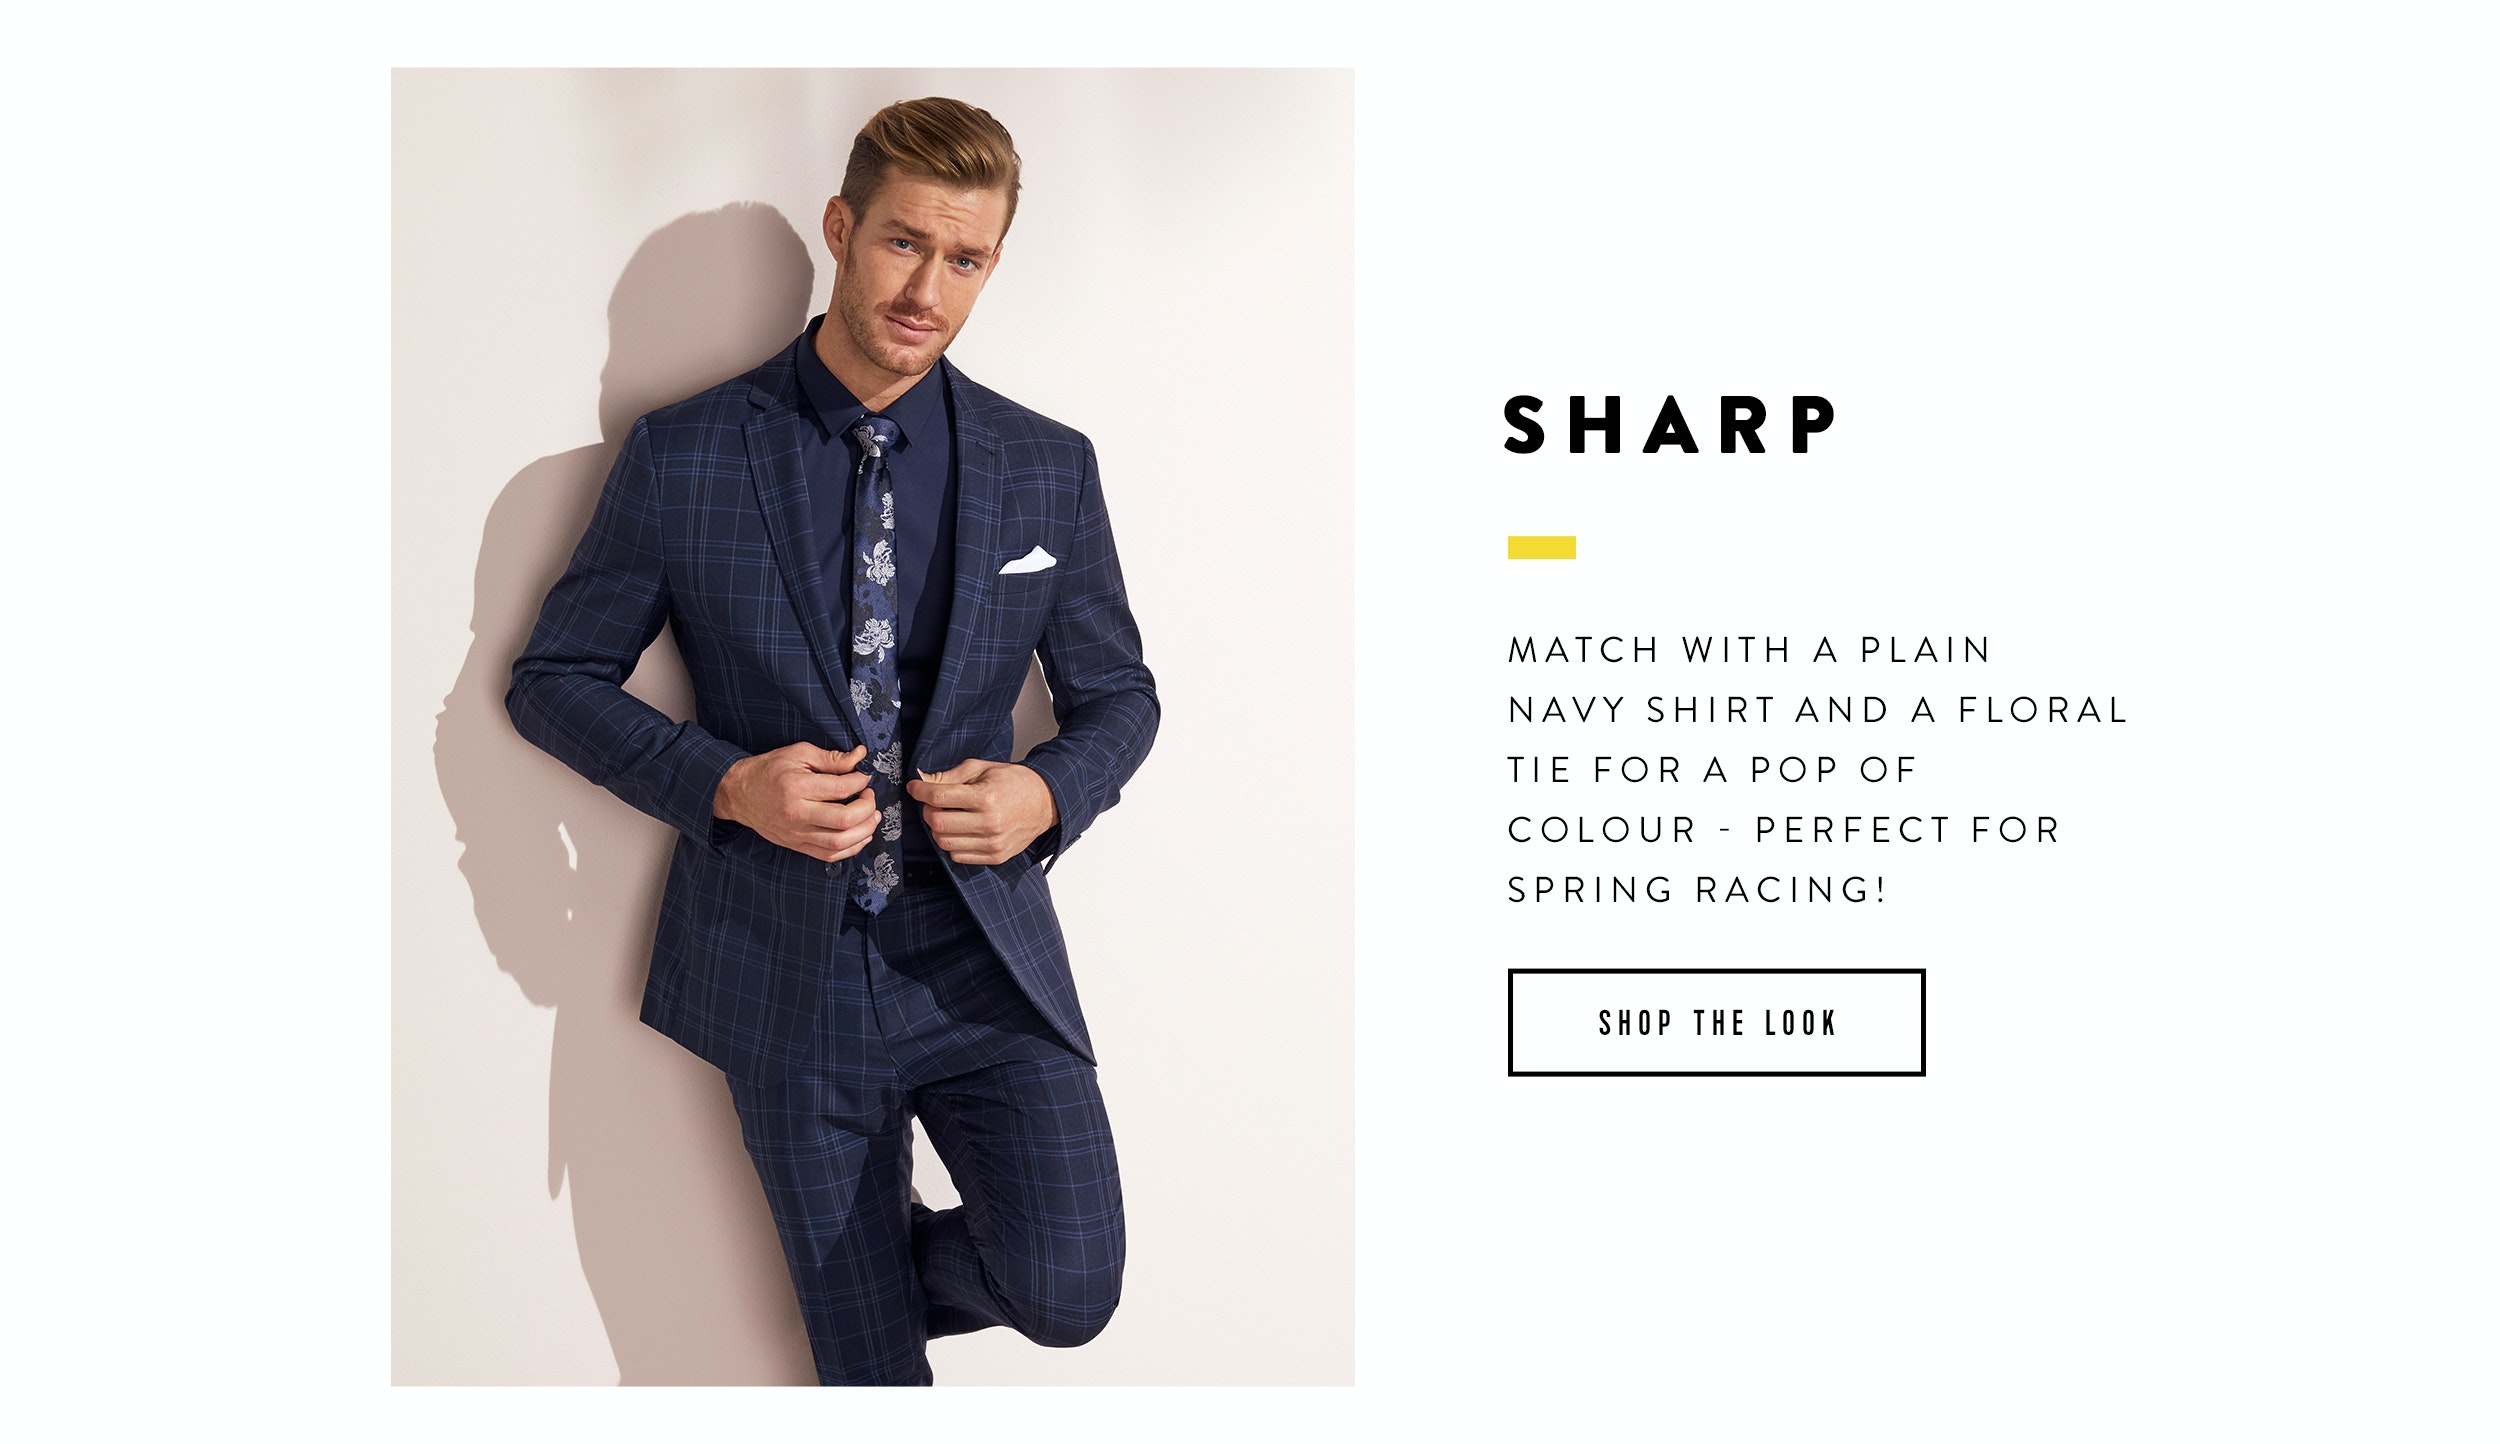 Ways to wear the check suit